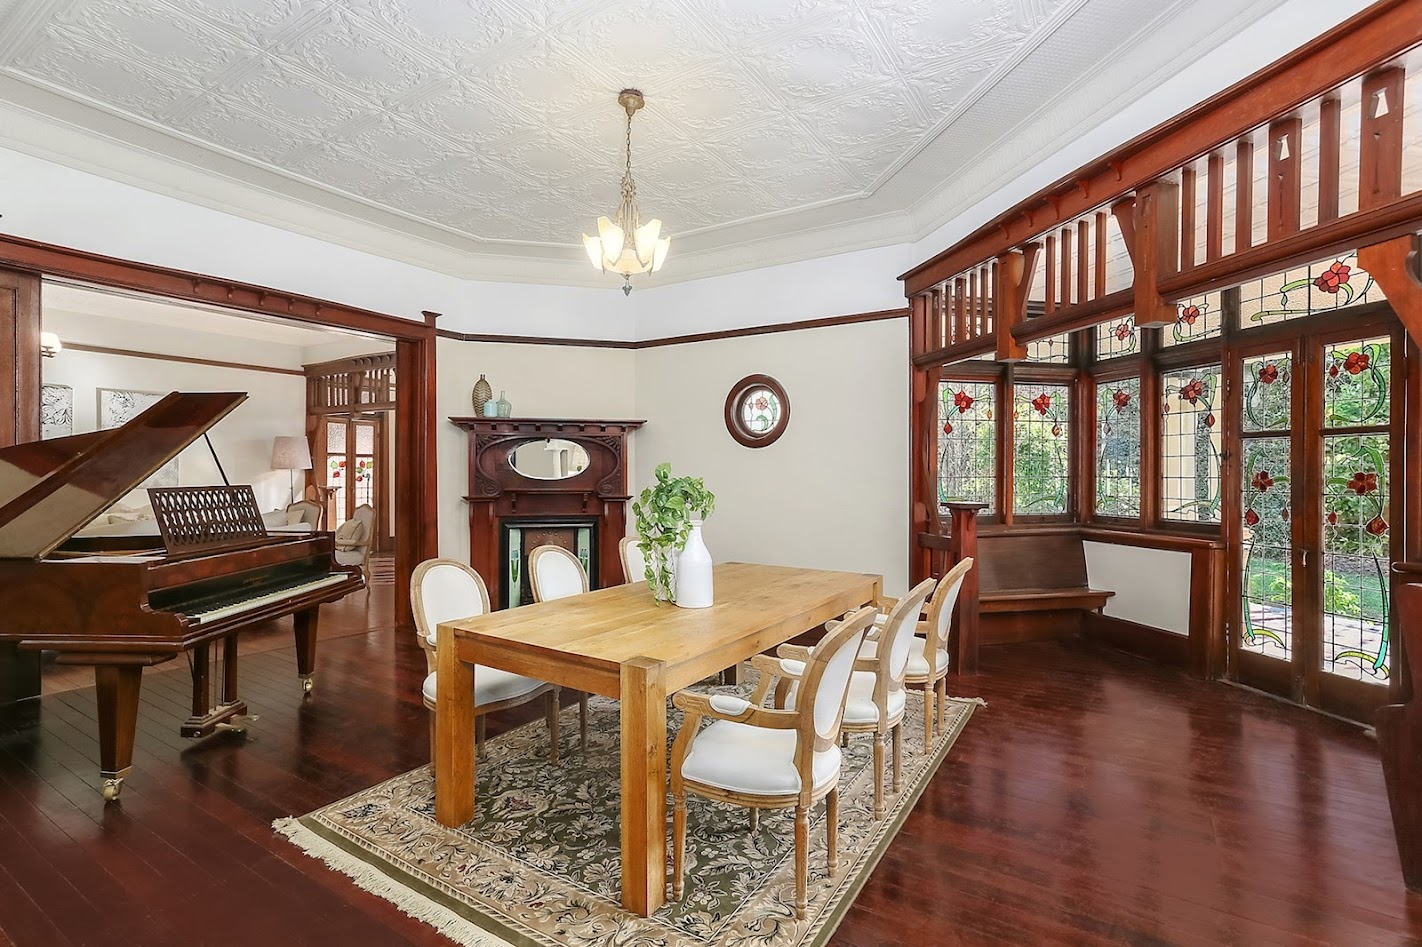 Beautiful ornate living area at Blairgowrie, 32 Abuklea Road, Epping NSW 2121